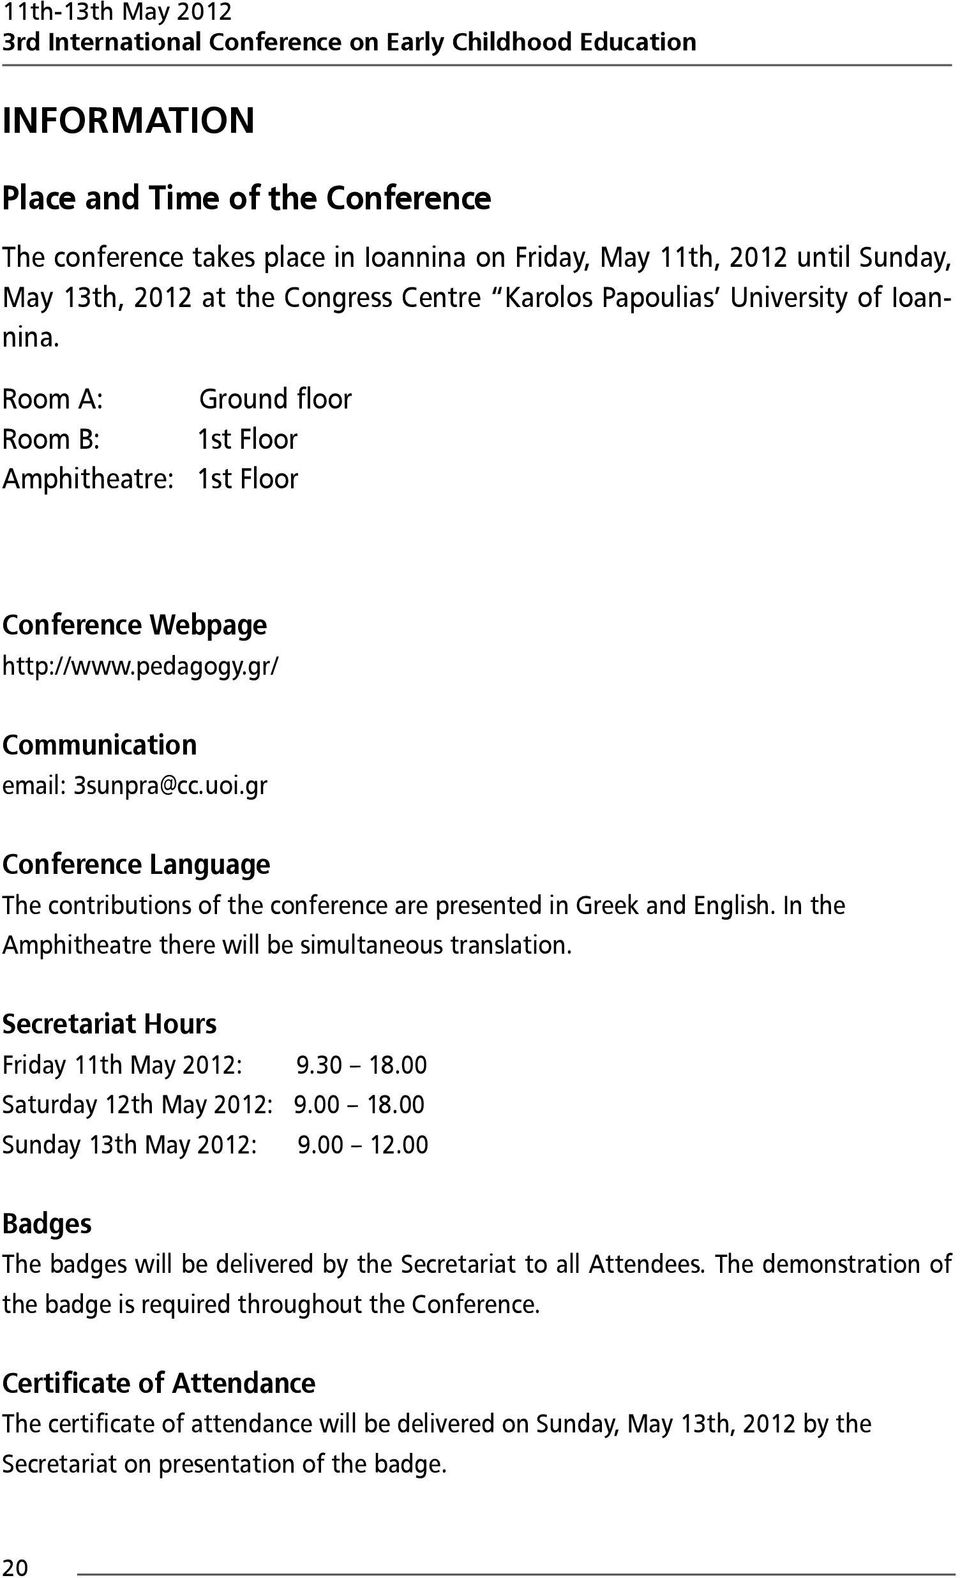 gr/ Communication email: 3sunpra@cc.uoi.gr Conference Language The contributions of the conference are presented in Greek and English. In the Amphitheatre there will be simultaneous translation.